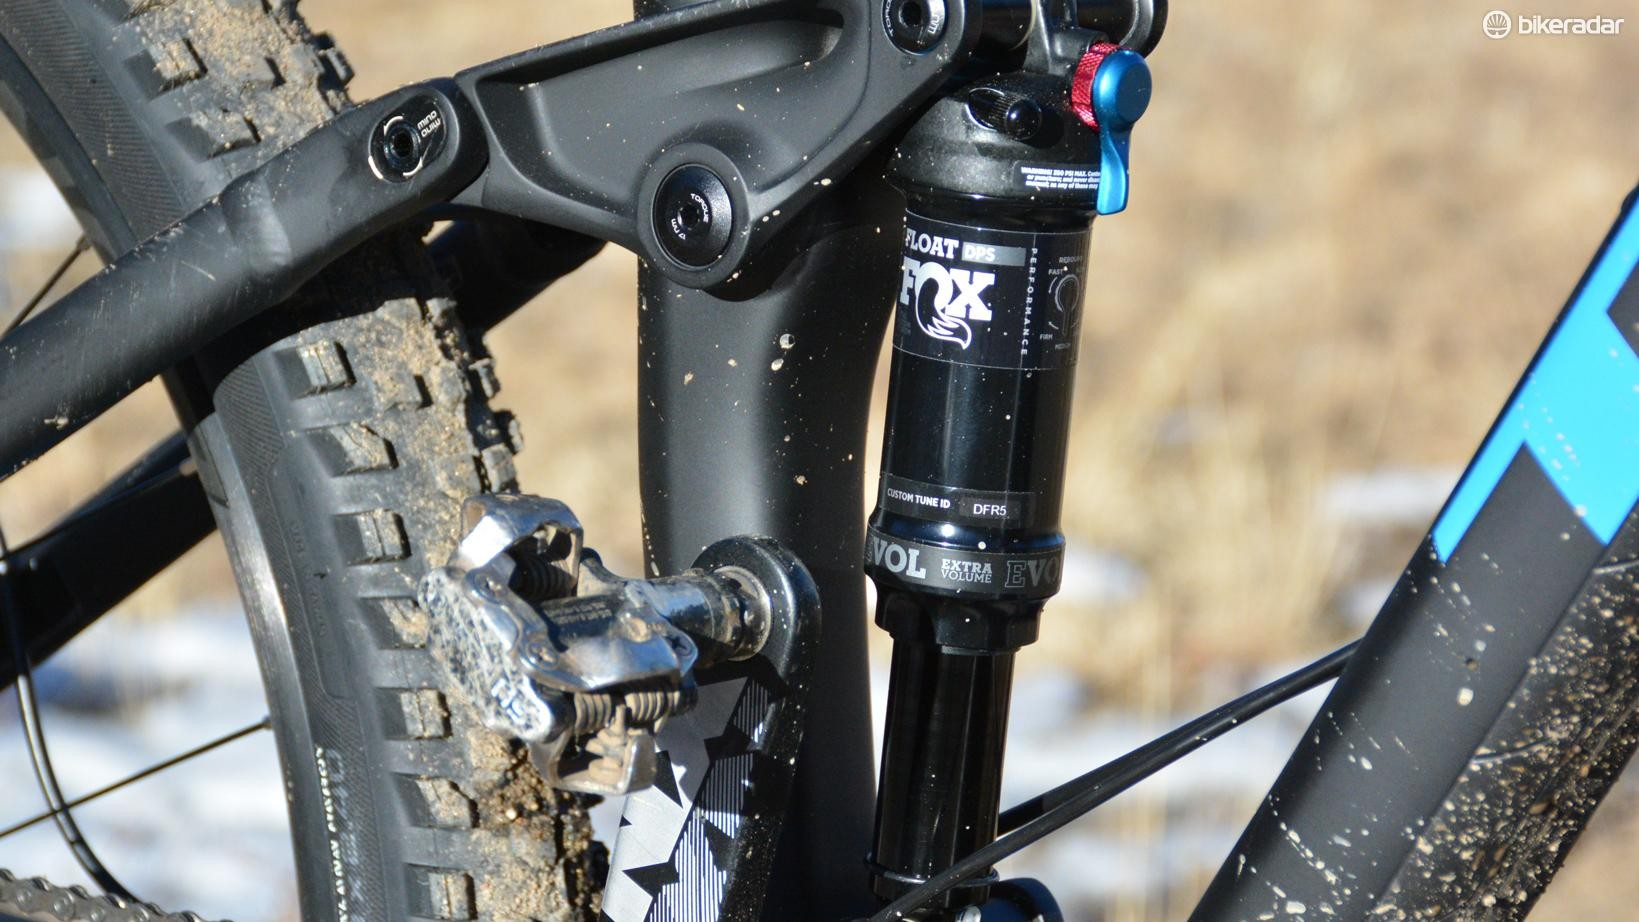 Trek's Suspension Lab has set the Fox Float damper tune and it worked beautifully throughout the 130mm travel